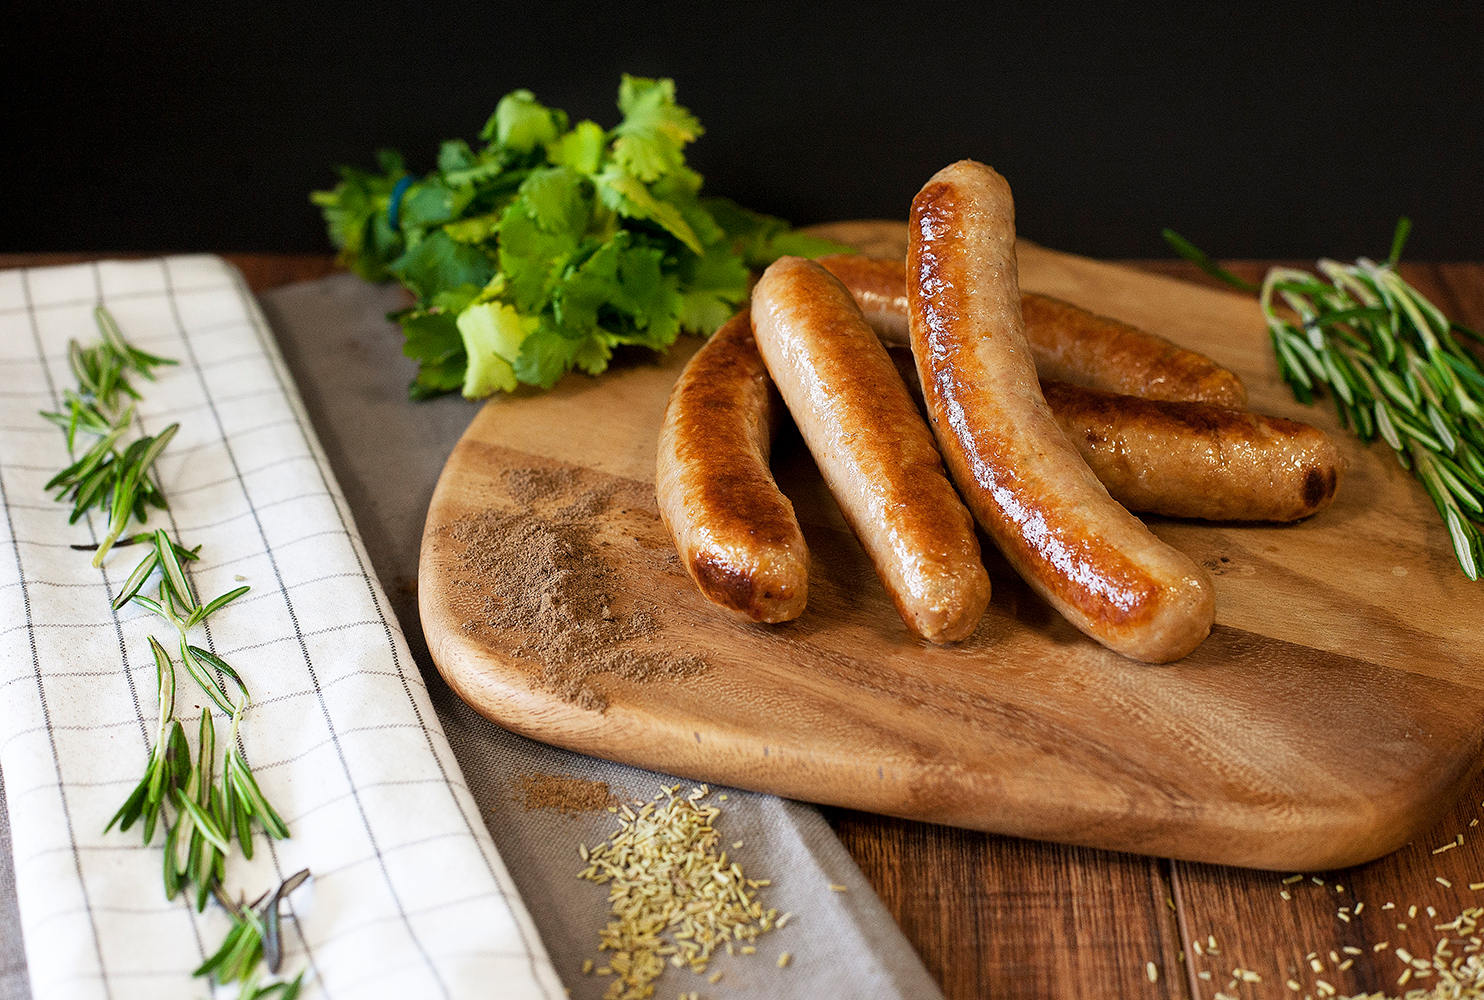 COUNTRY FAYRE FARMHOUSE SAUSAGE MIX